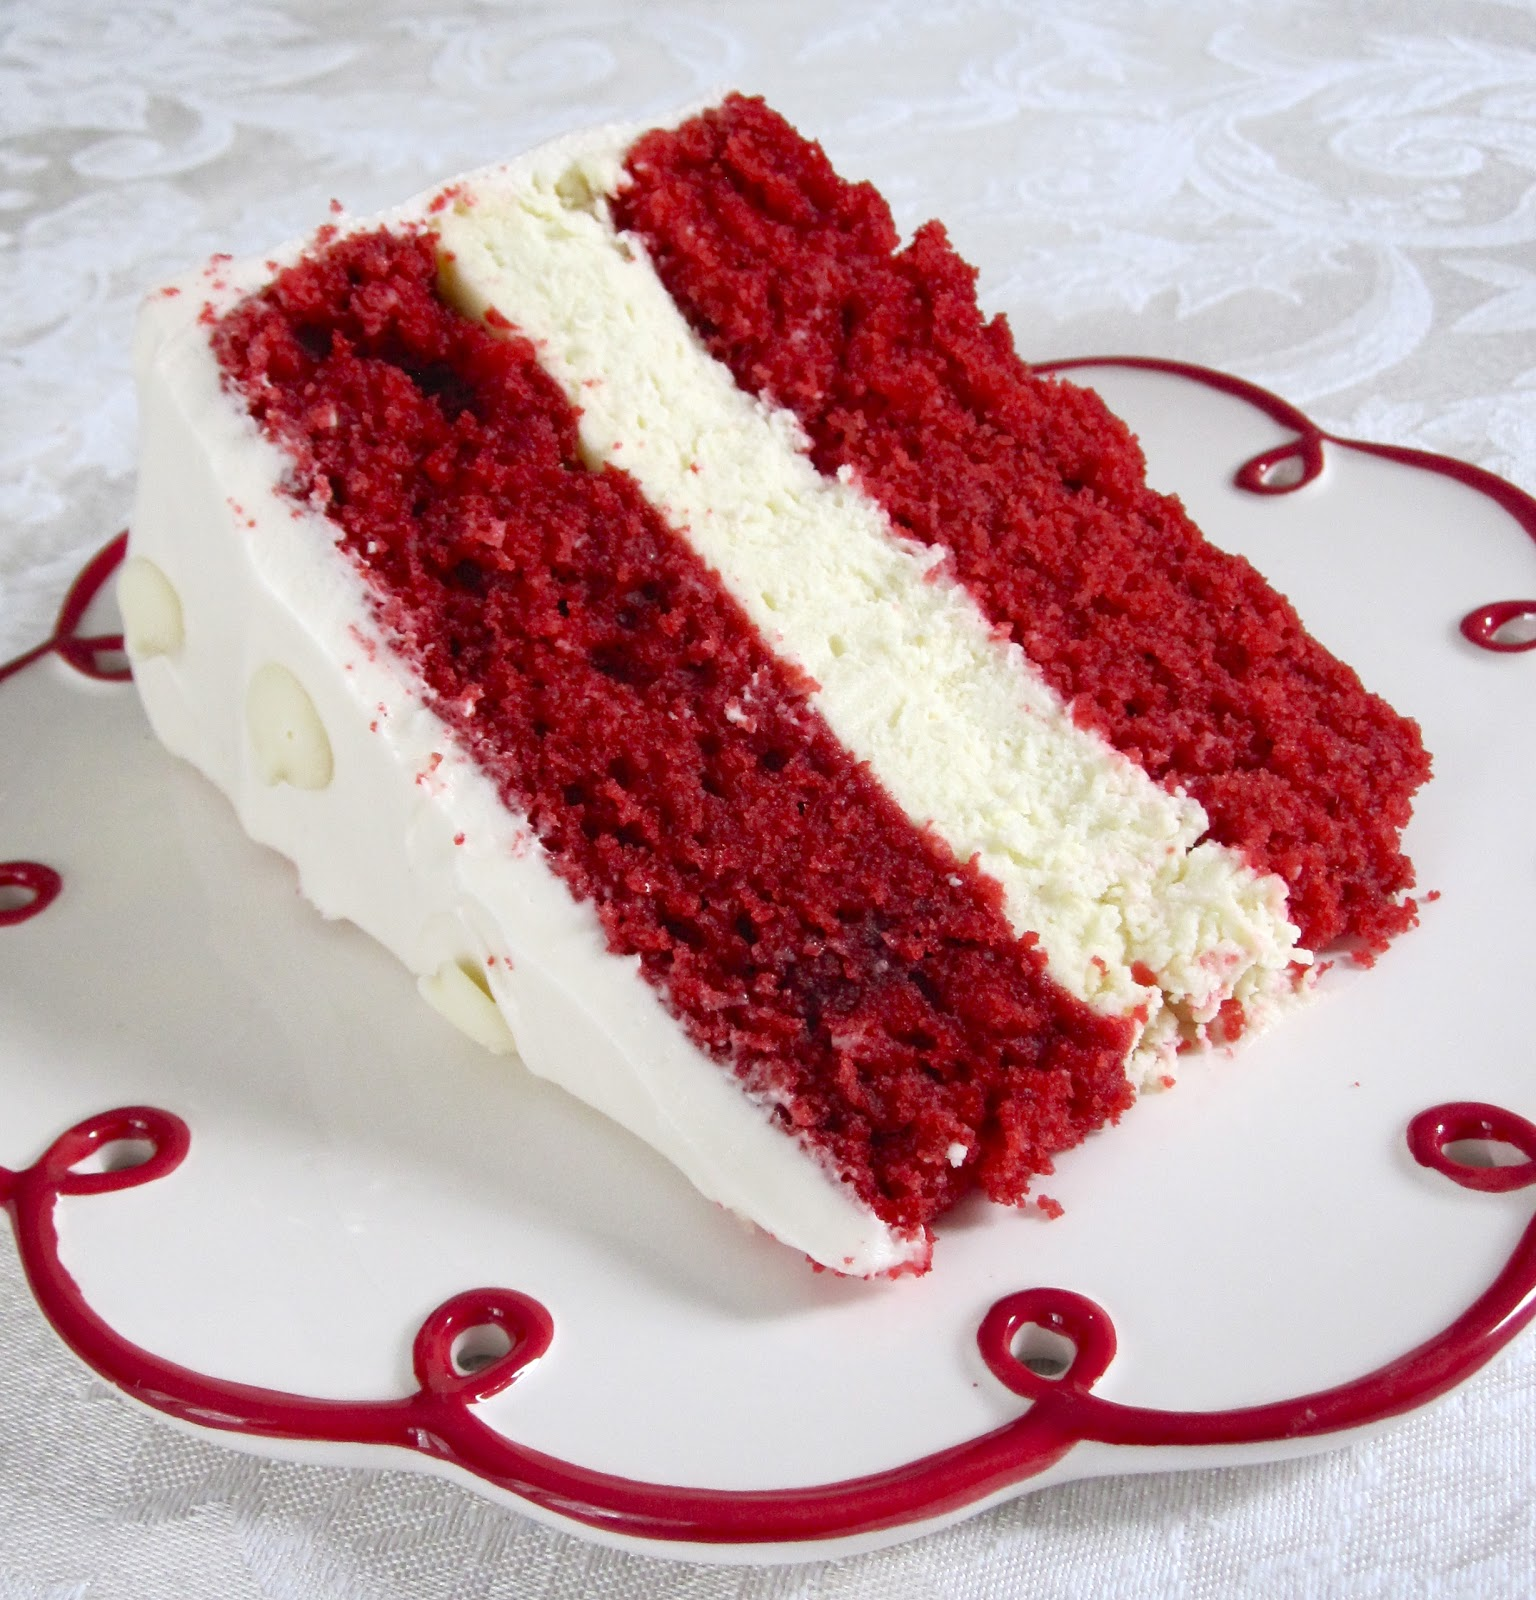 Is Red Velvet Cake Chocolate Or Vanilla